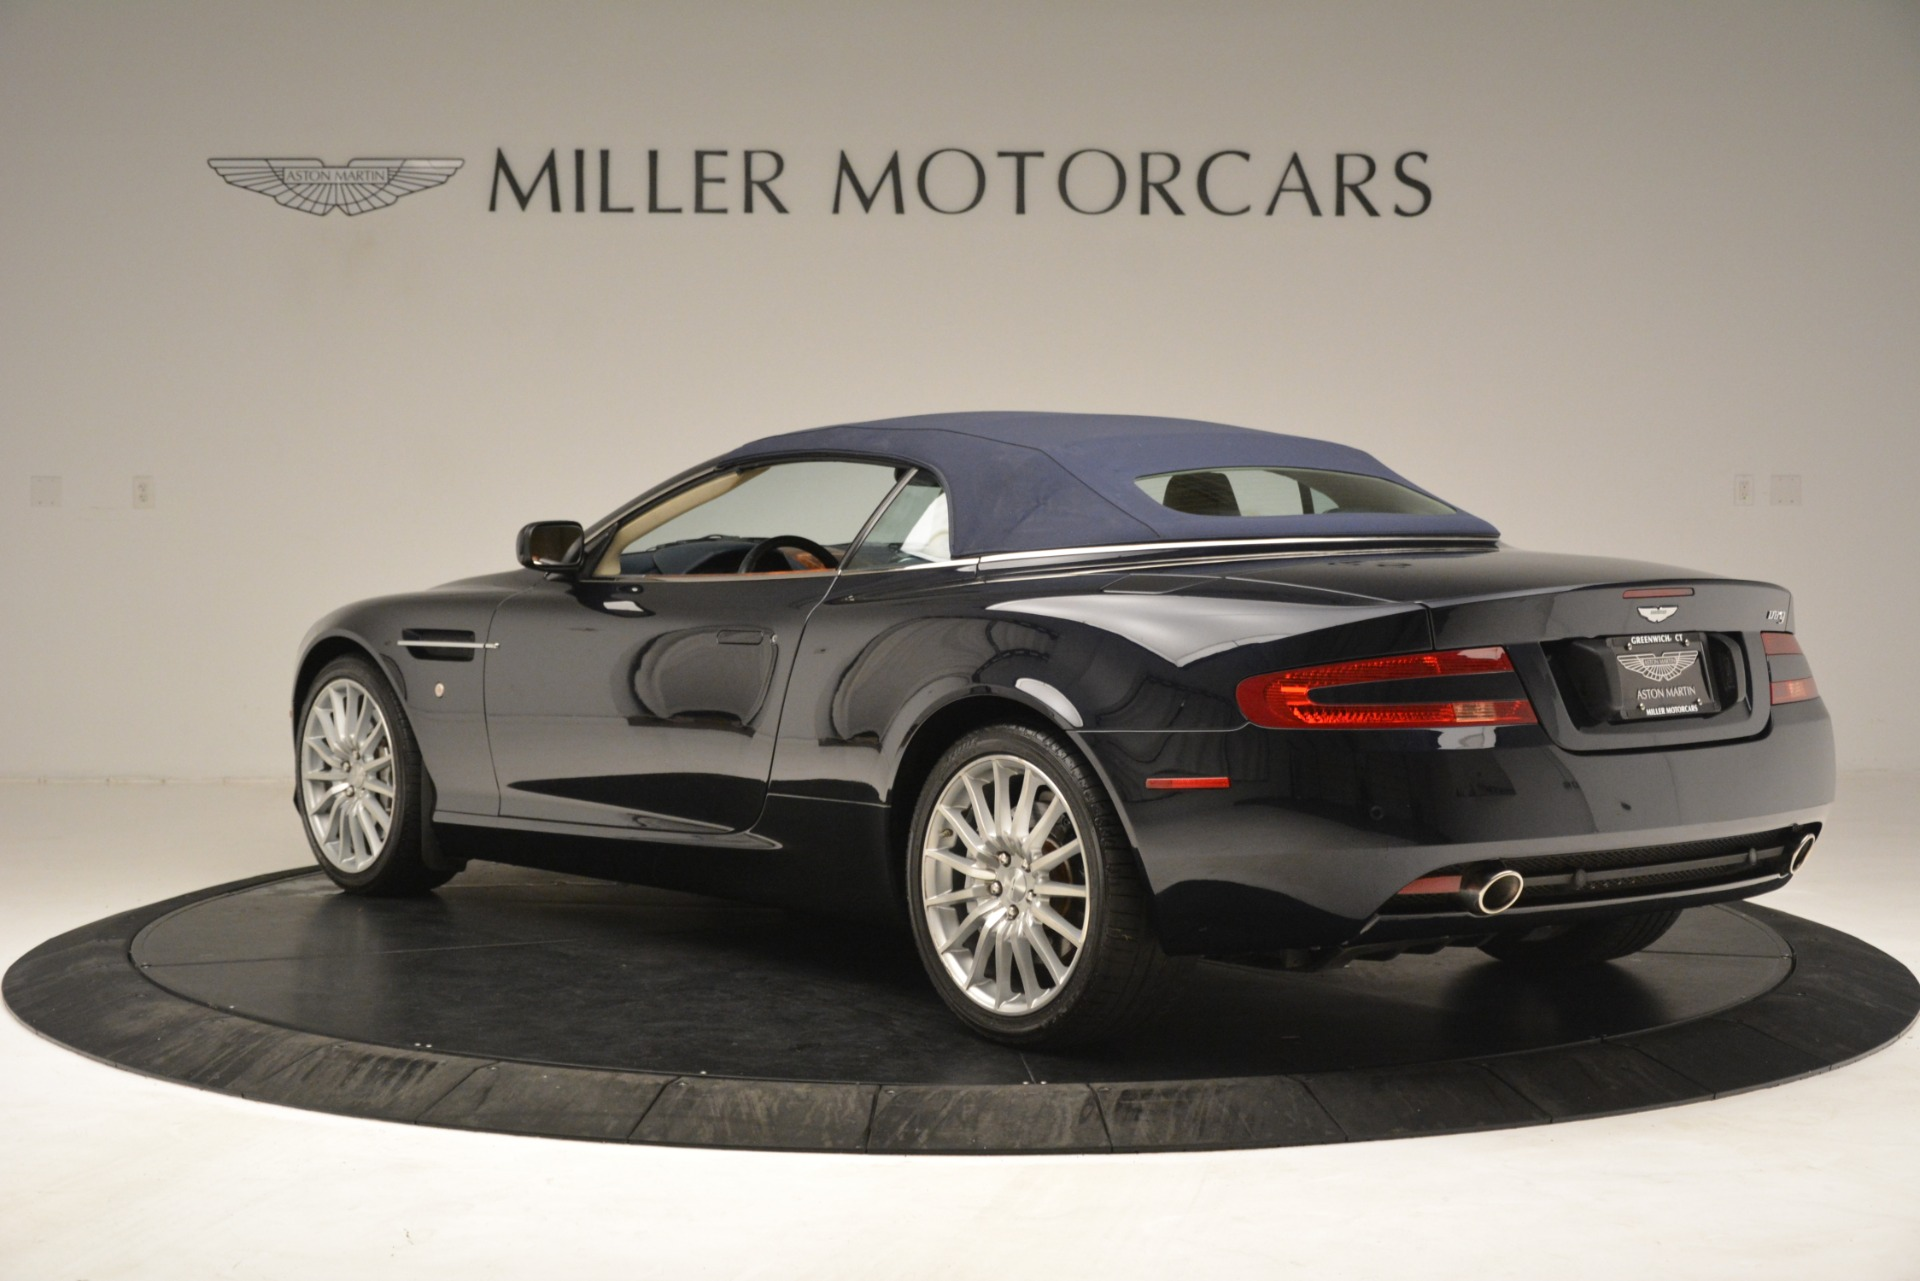 Used 2007 Aston Martin DB9 Convertible For Sale In Westport, CT 3291_p26